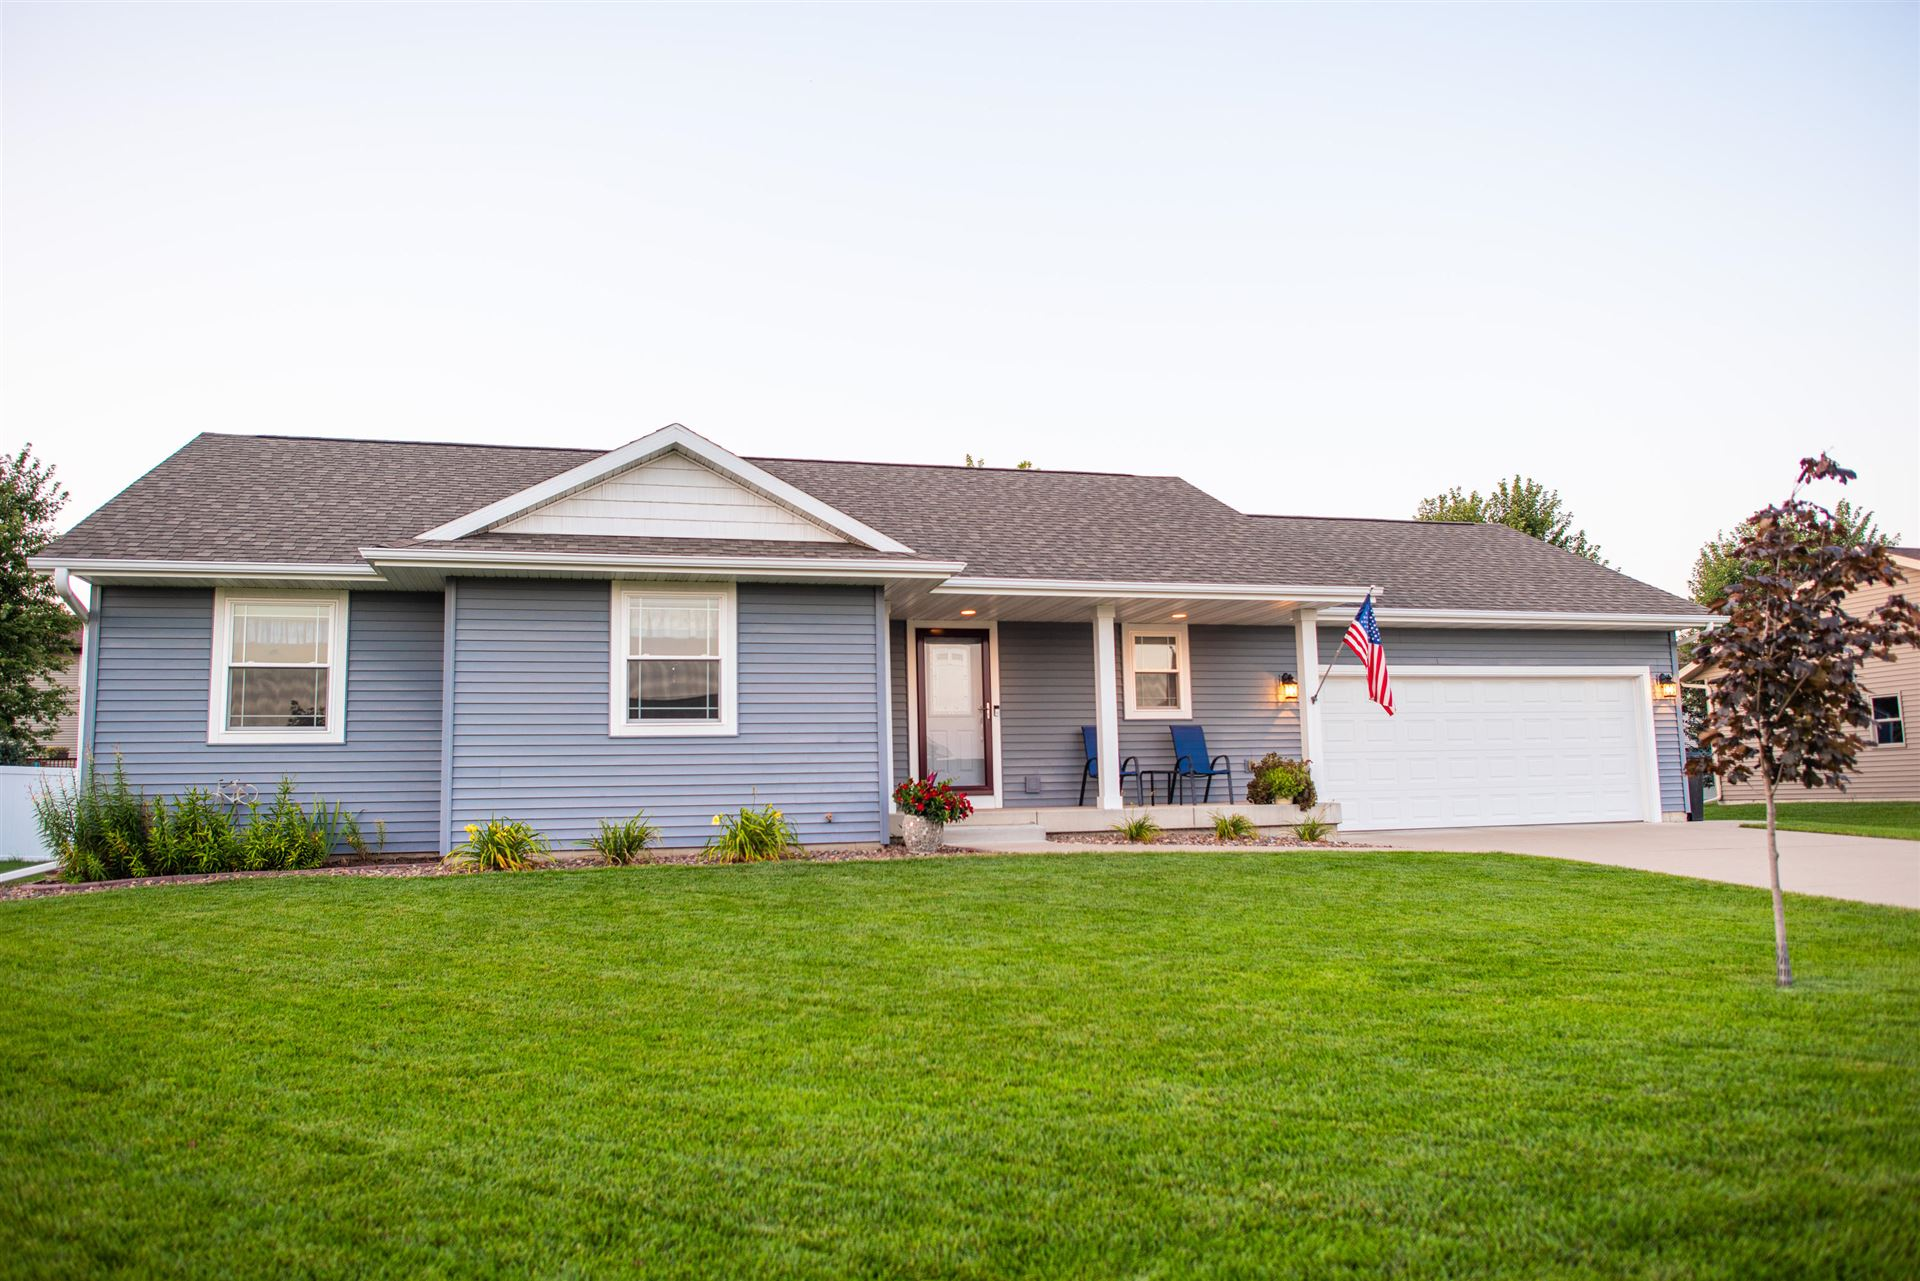 2160 Remington Ave, Sparta, WI 54656 - MLS#: 1707120